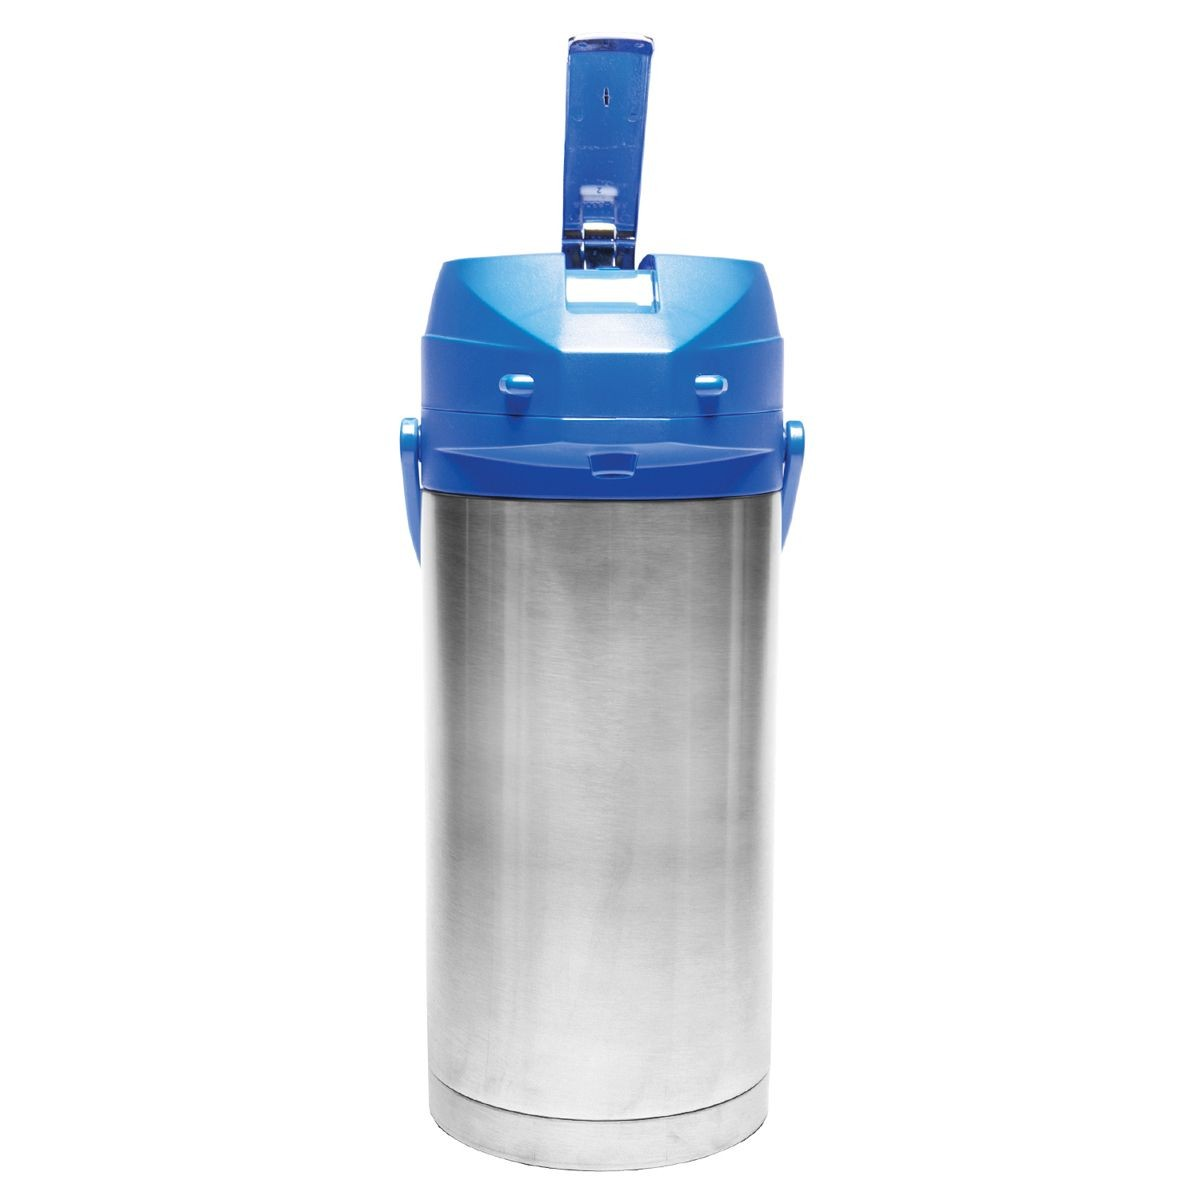 Service Ideas CTAL37BLU Blue Top Stainless Steel Lined Color Me SVAC Airpot, 3.7 Liter